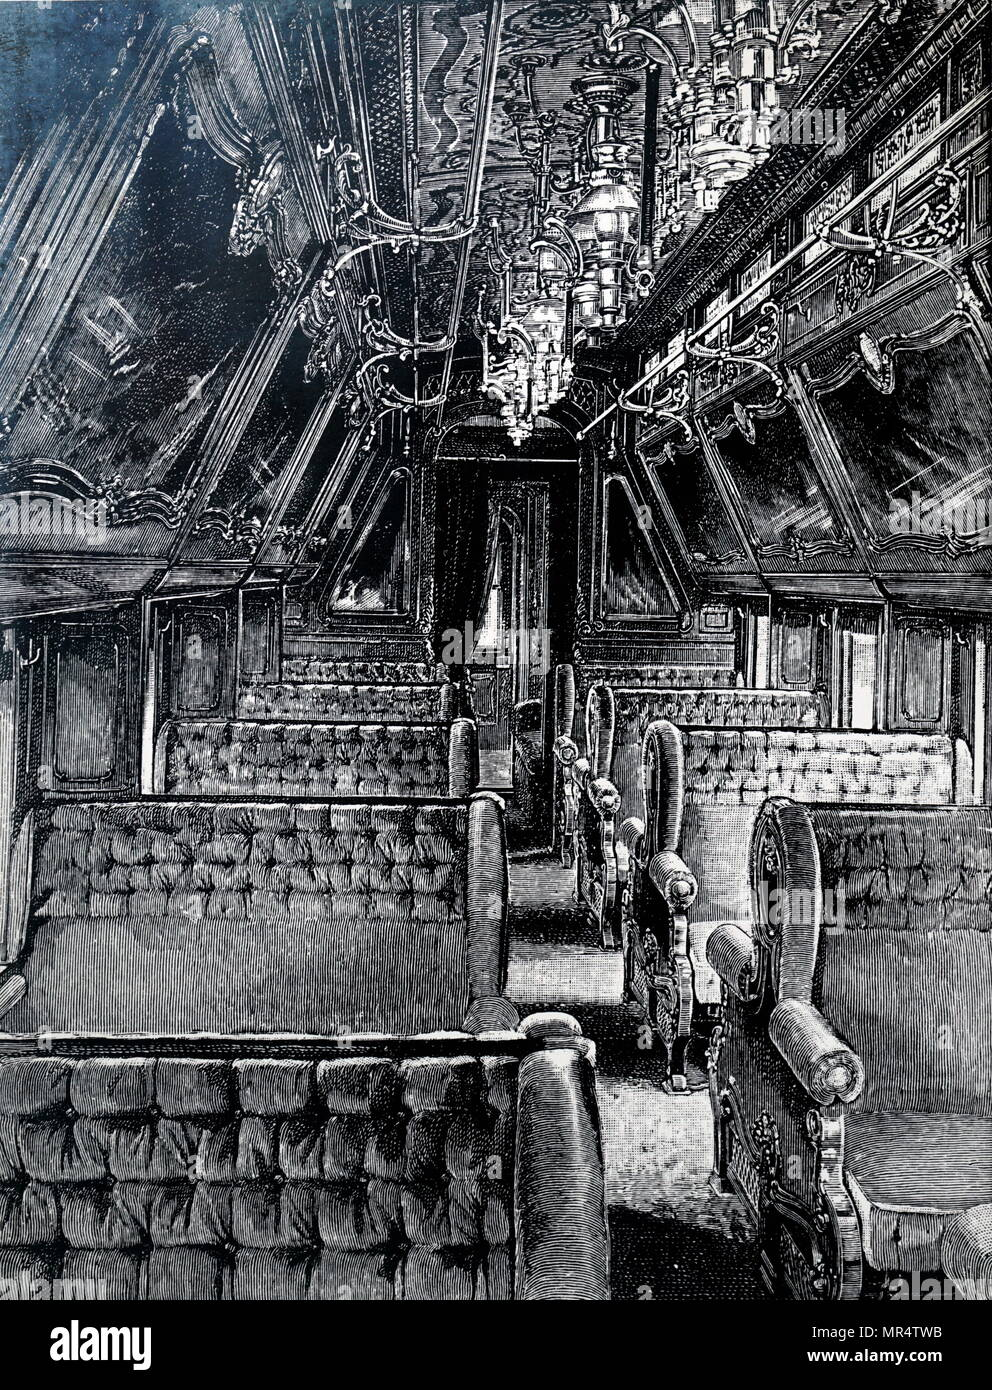 Engraving depicting a Pullman sleeper car on a vestibule train, which has enclosed vestibules at their ends, in contrast to the open platforms on early cars. Dated 19th century - Stock Image